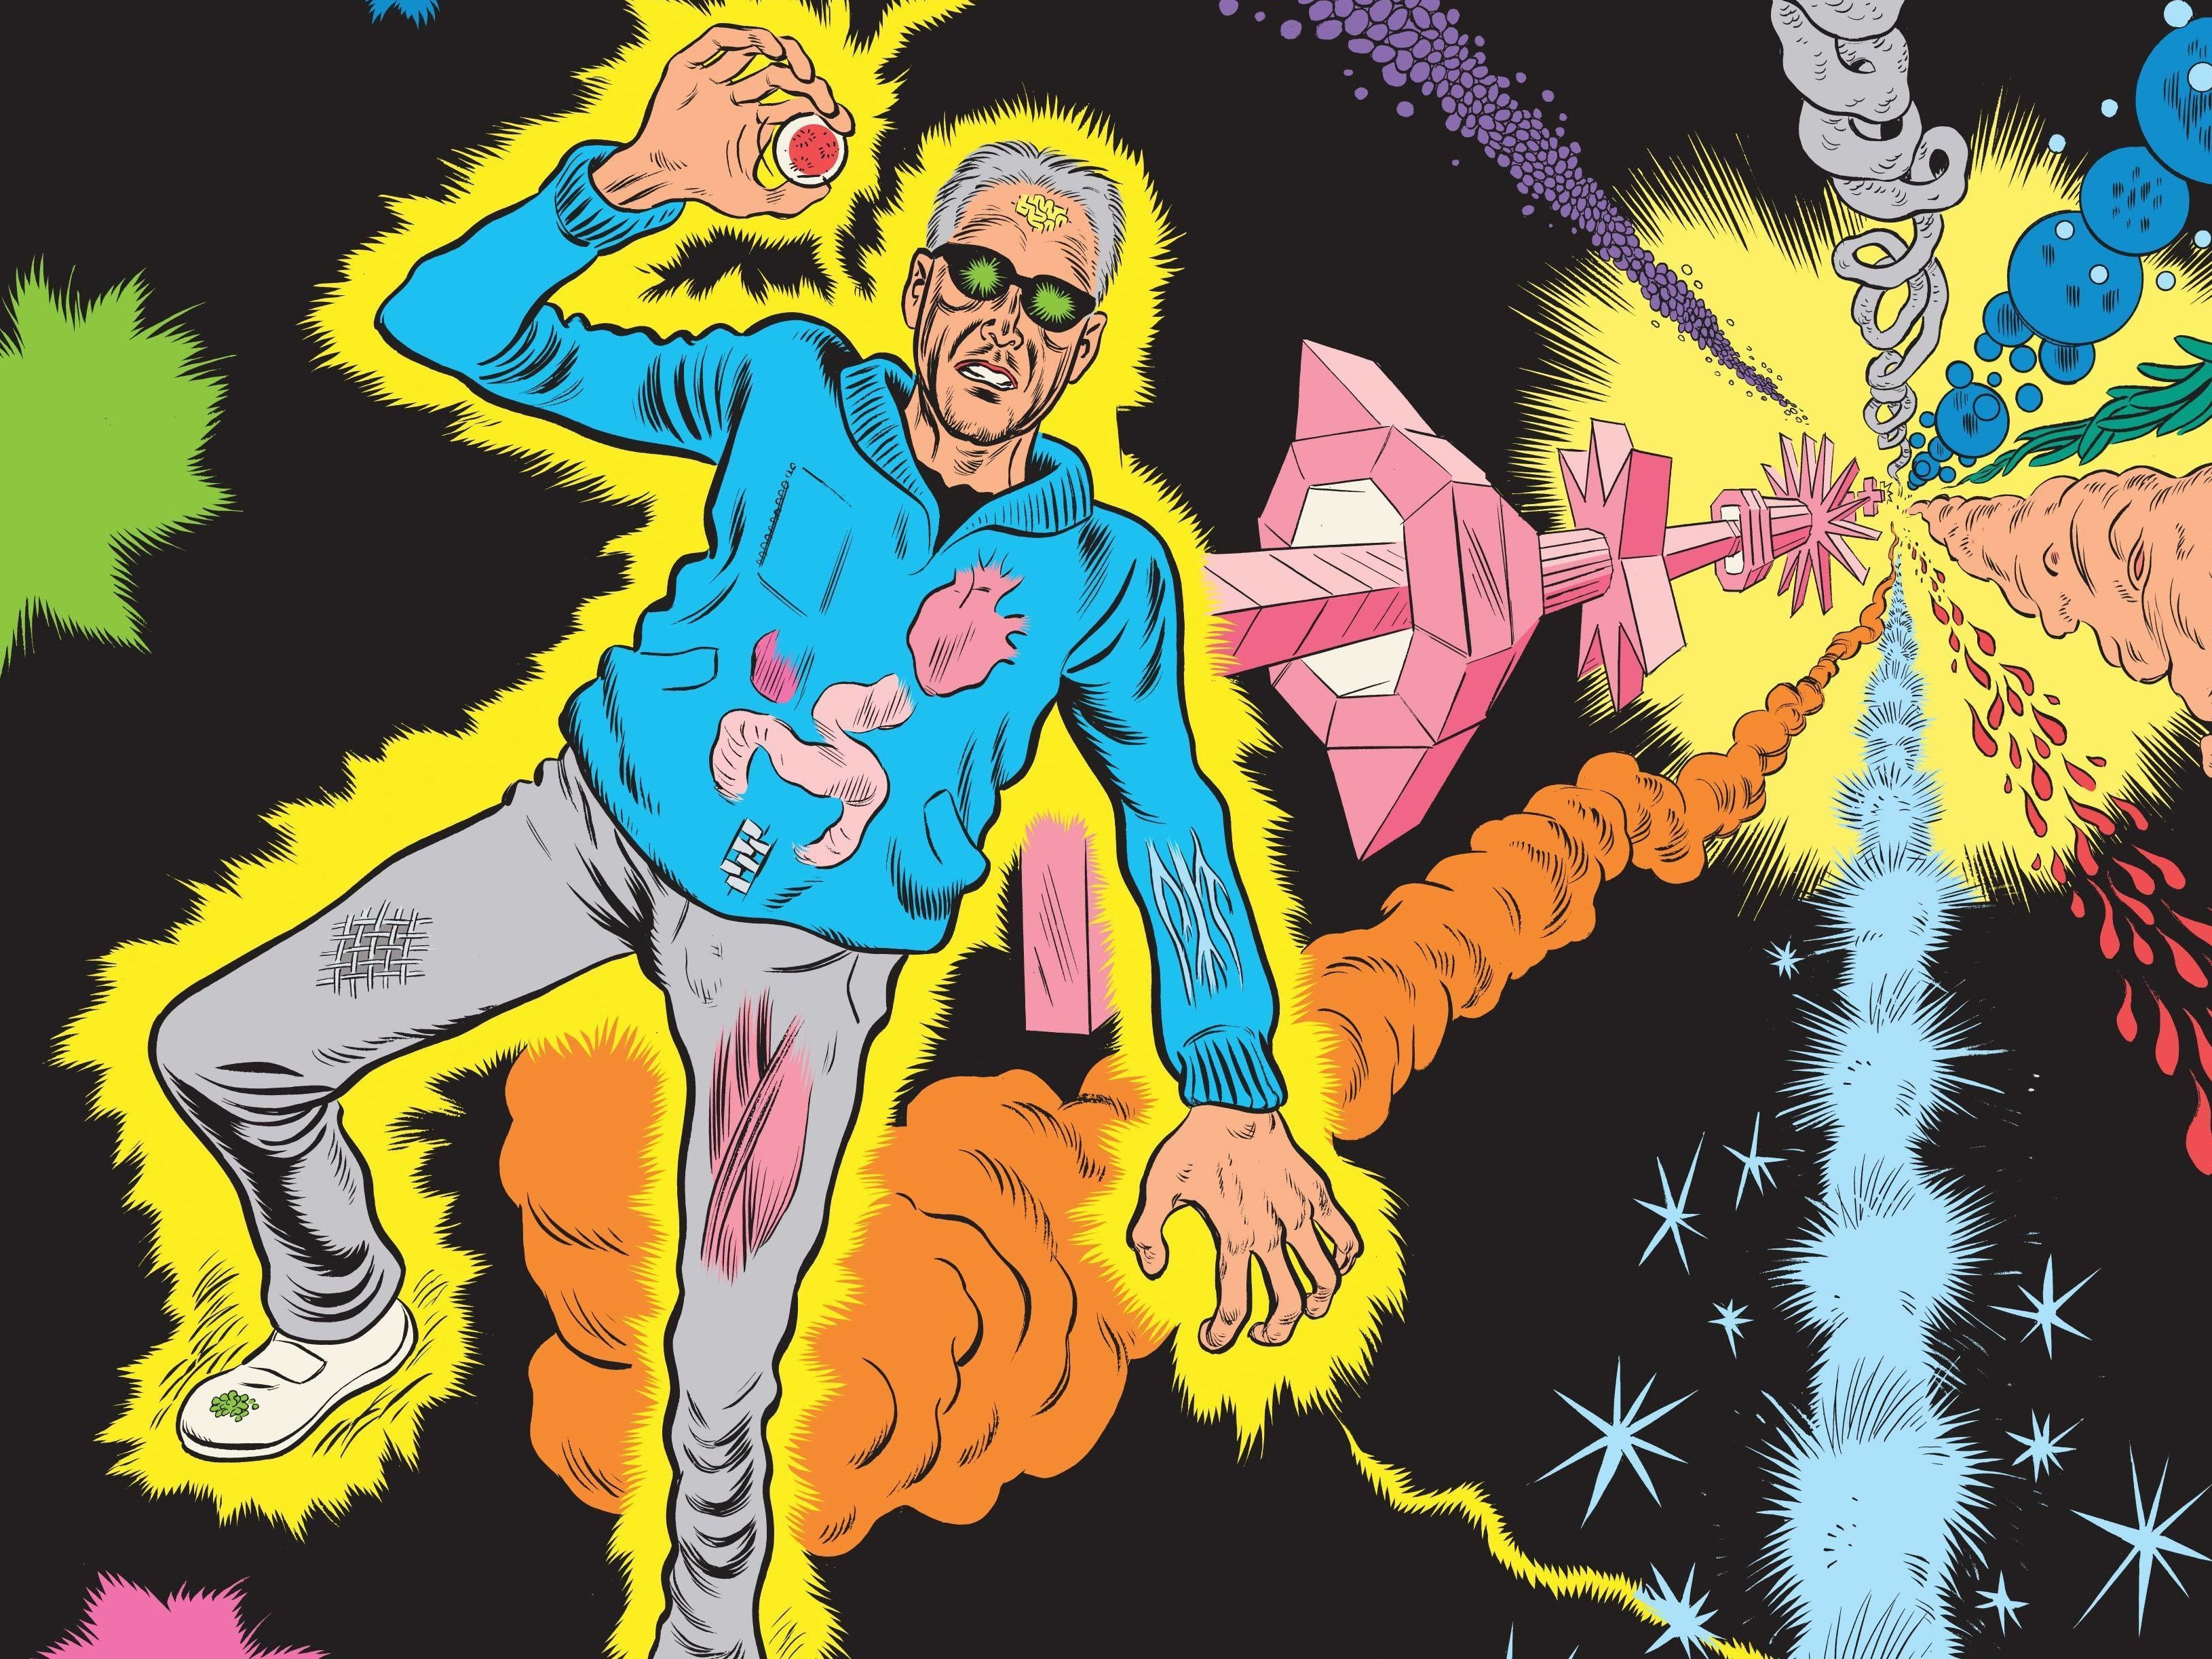 Cartoonist Daniel Clowes On Time Travel And Giving Readers ...